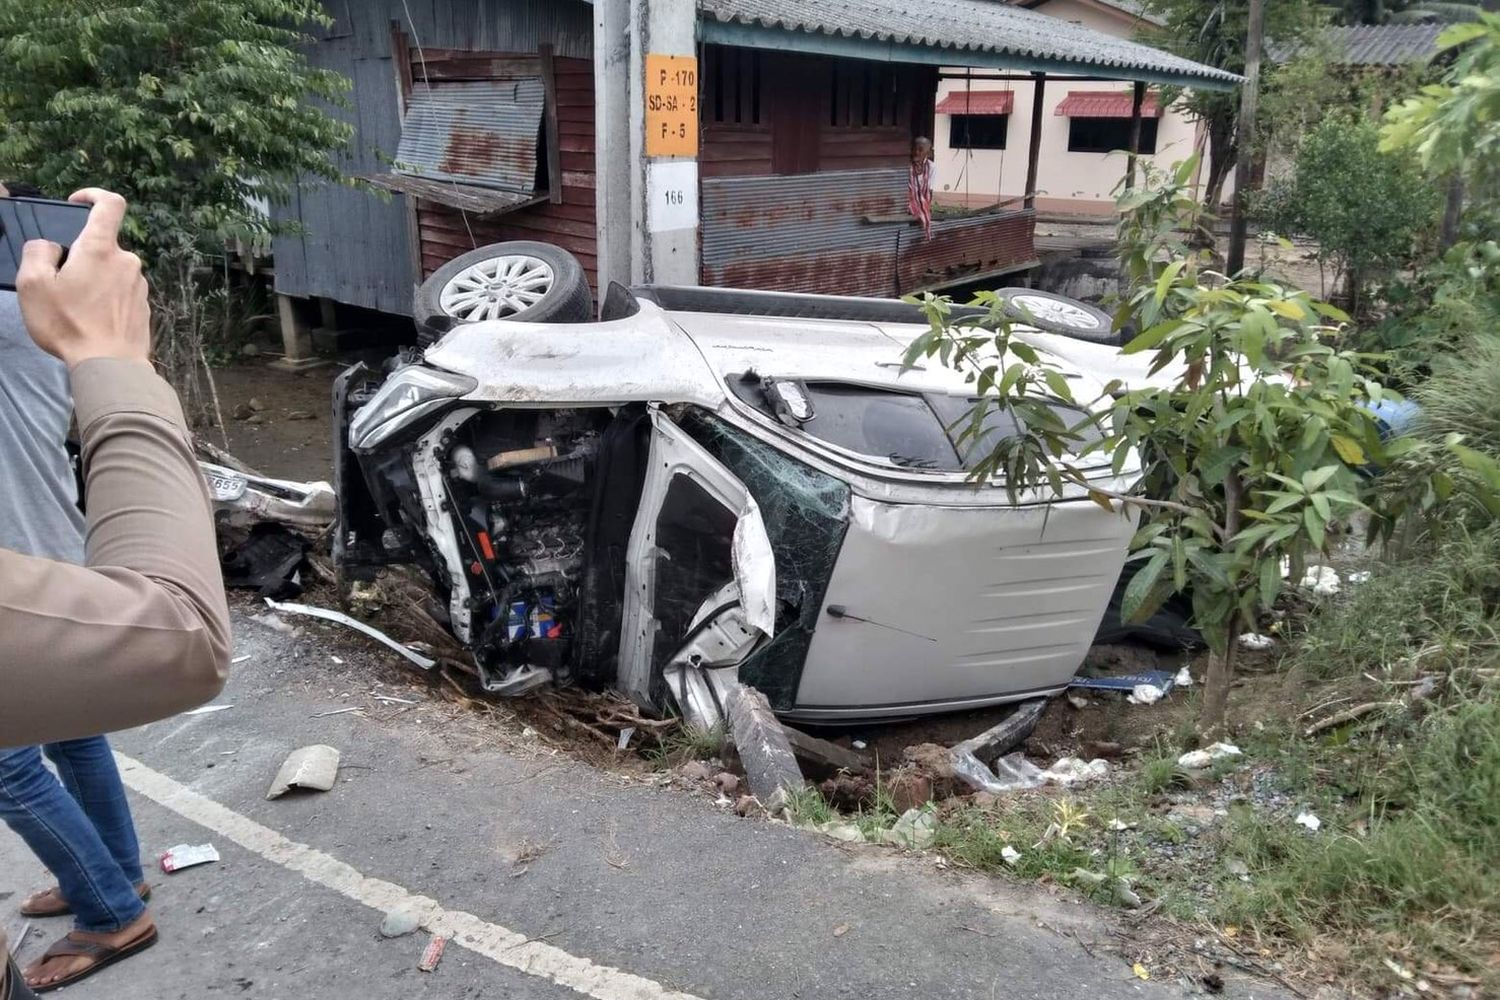 The wreckage of one the pickup trucks in a crash that took place in Hau Sai district, Nakhon Si Thammarat province, on Monday. A man was killed instantly and two others were injured, one seriously. (Photo by Suchet Raekrun)